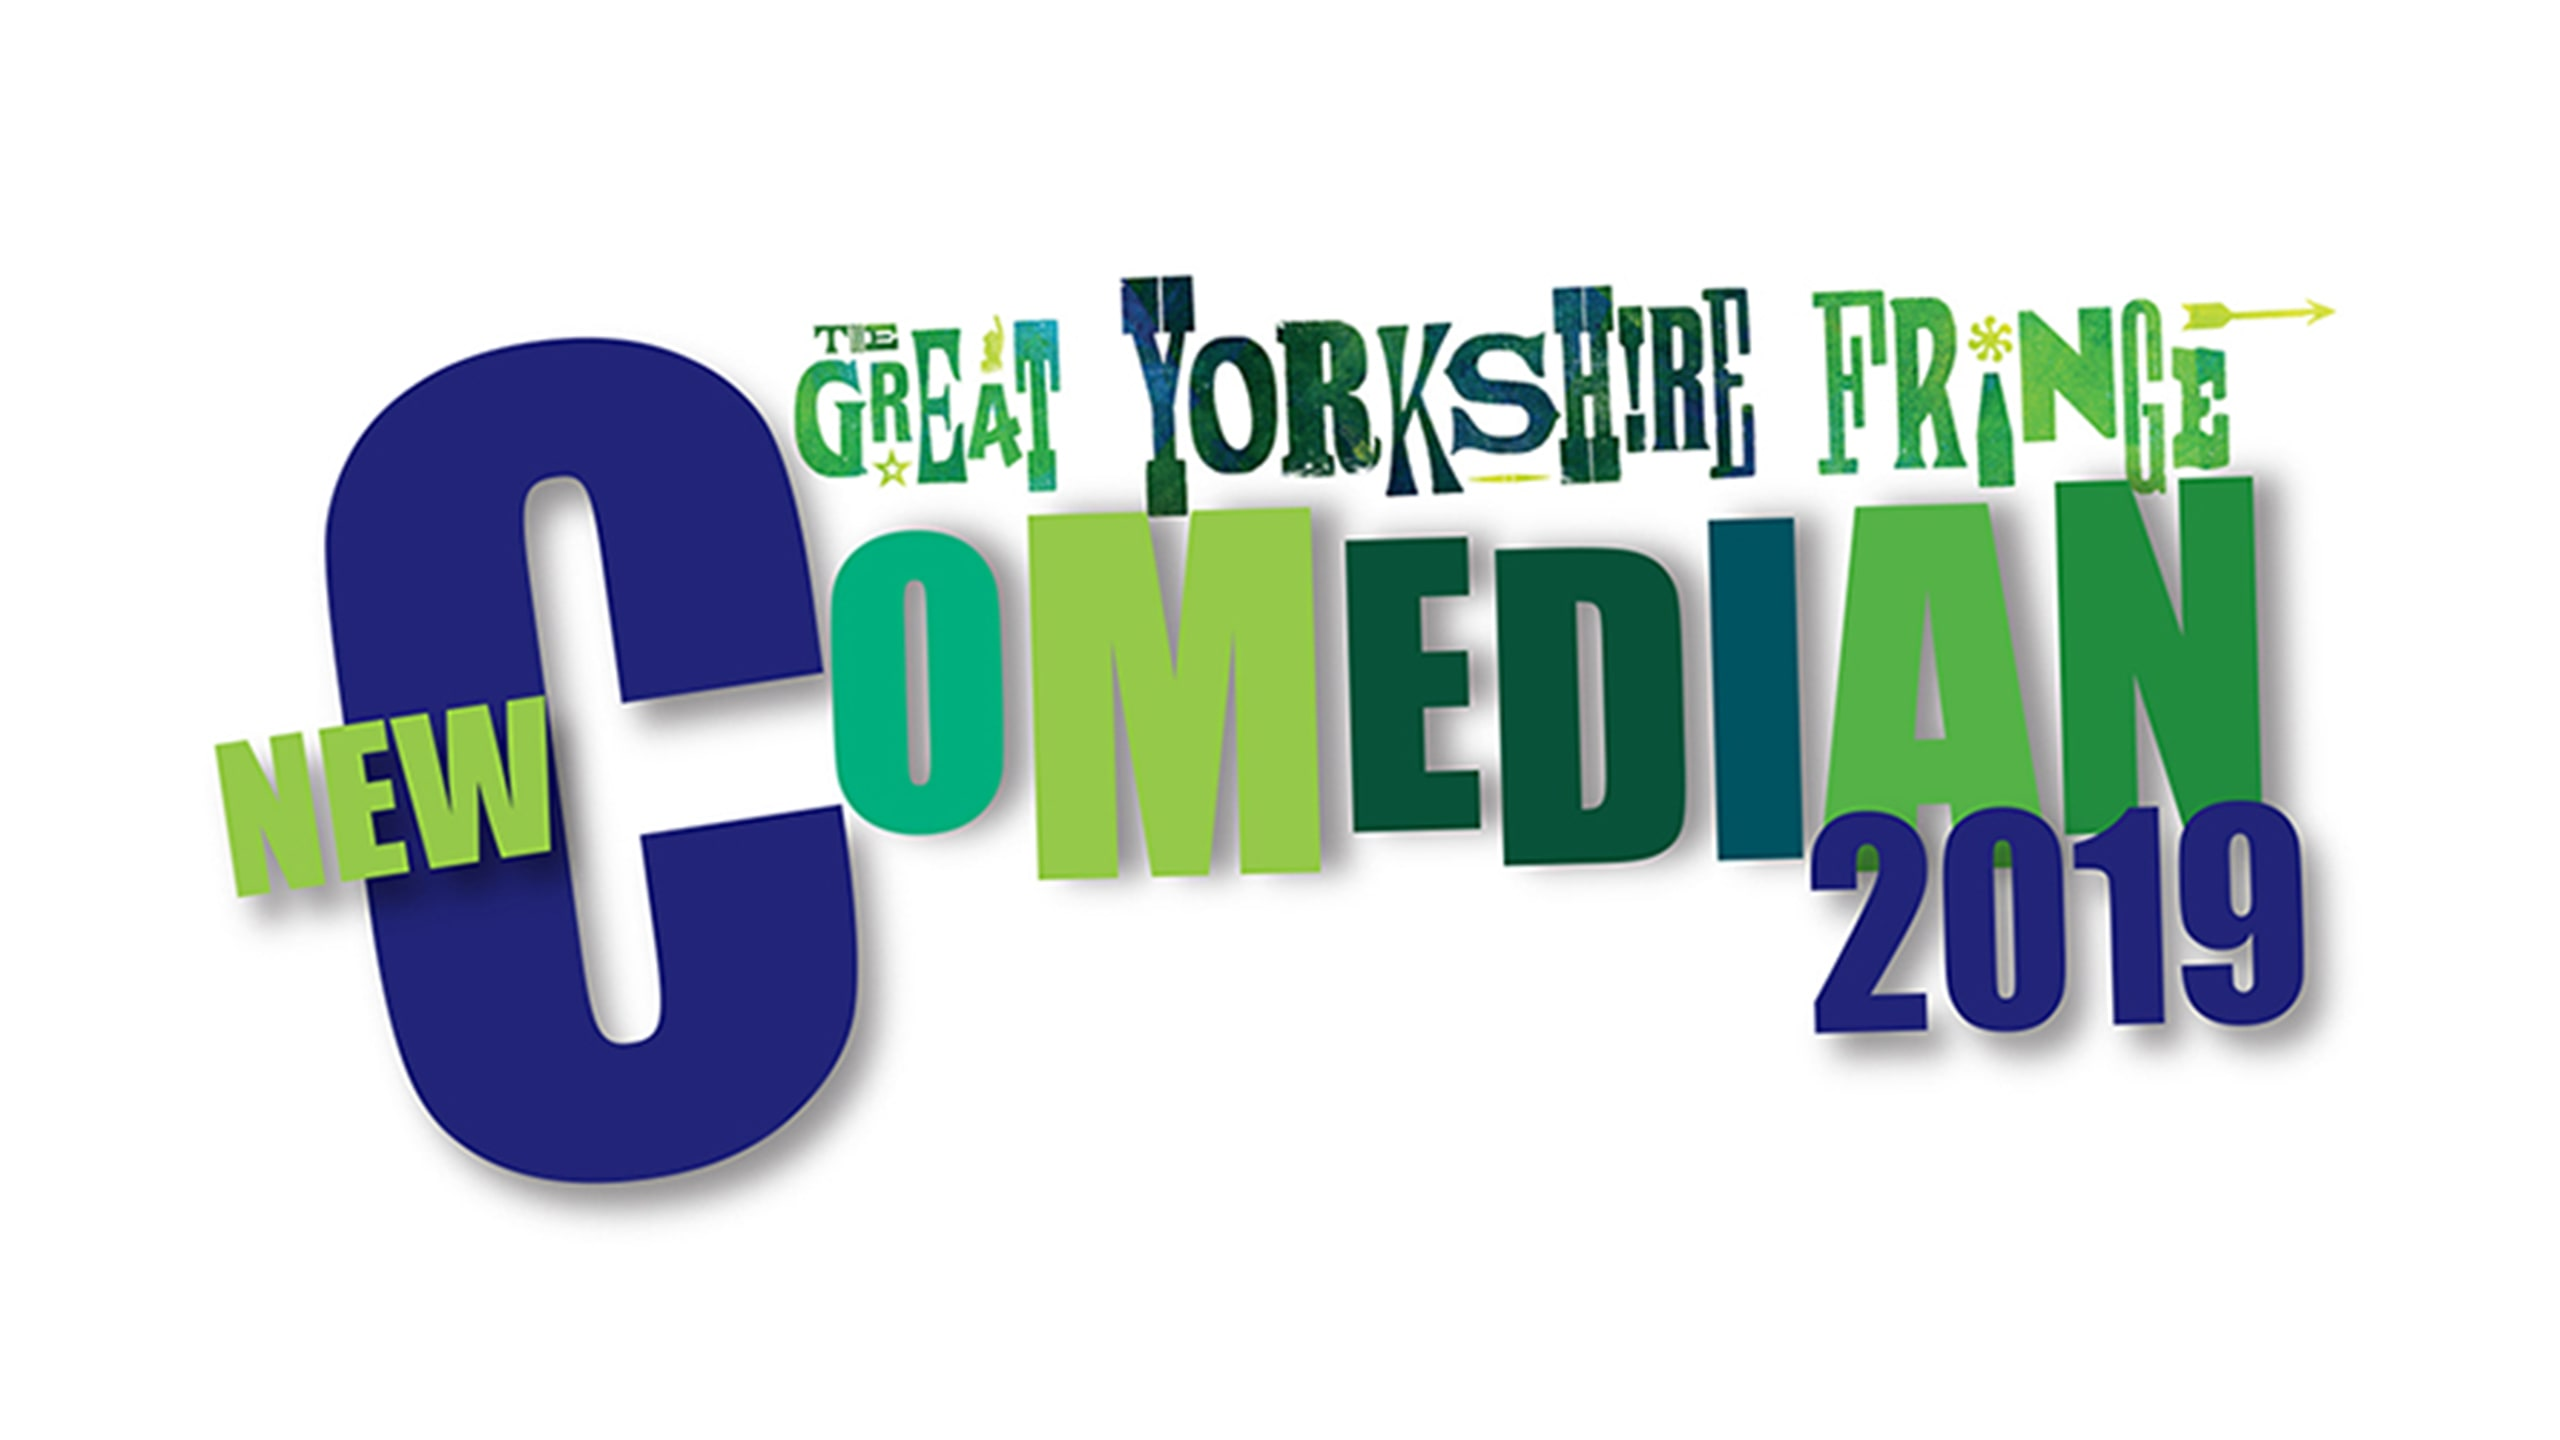 Great Yorkshire Fringe New Comedian of the Year 2019: Final